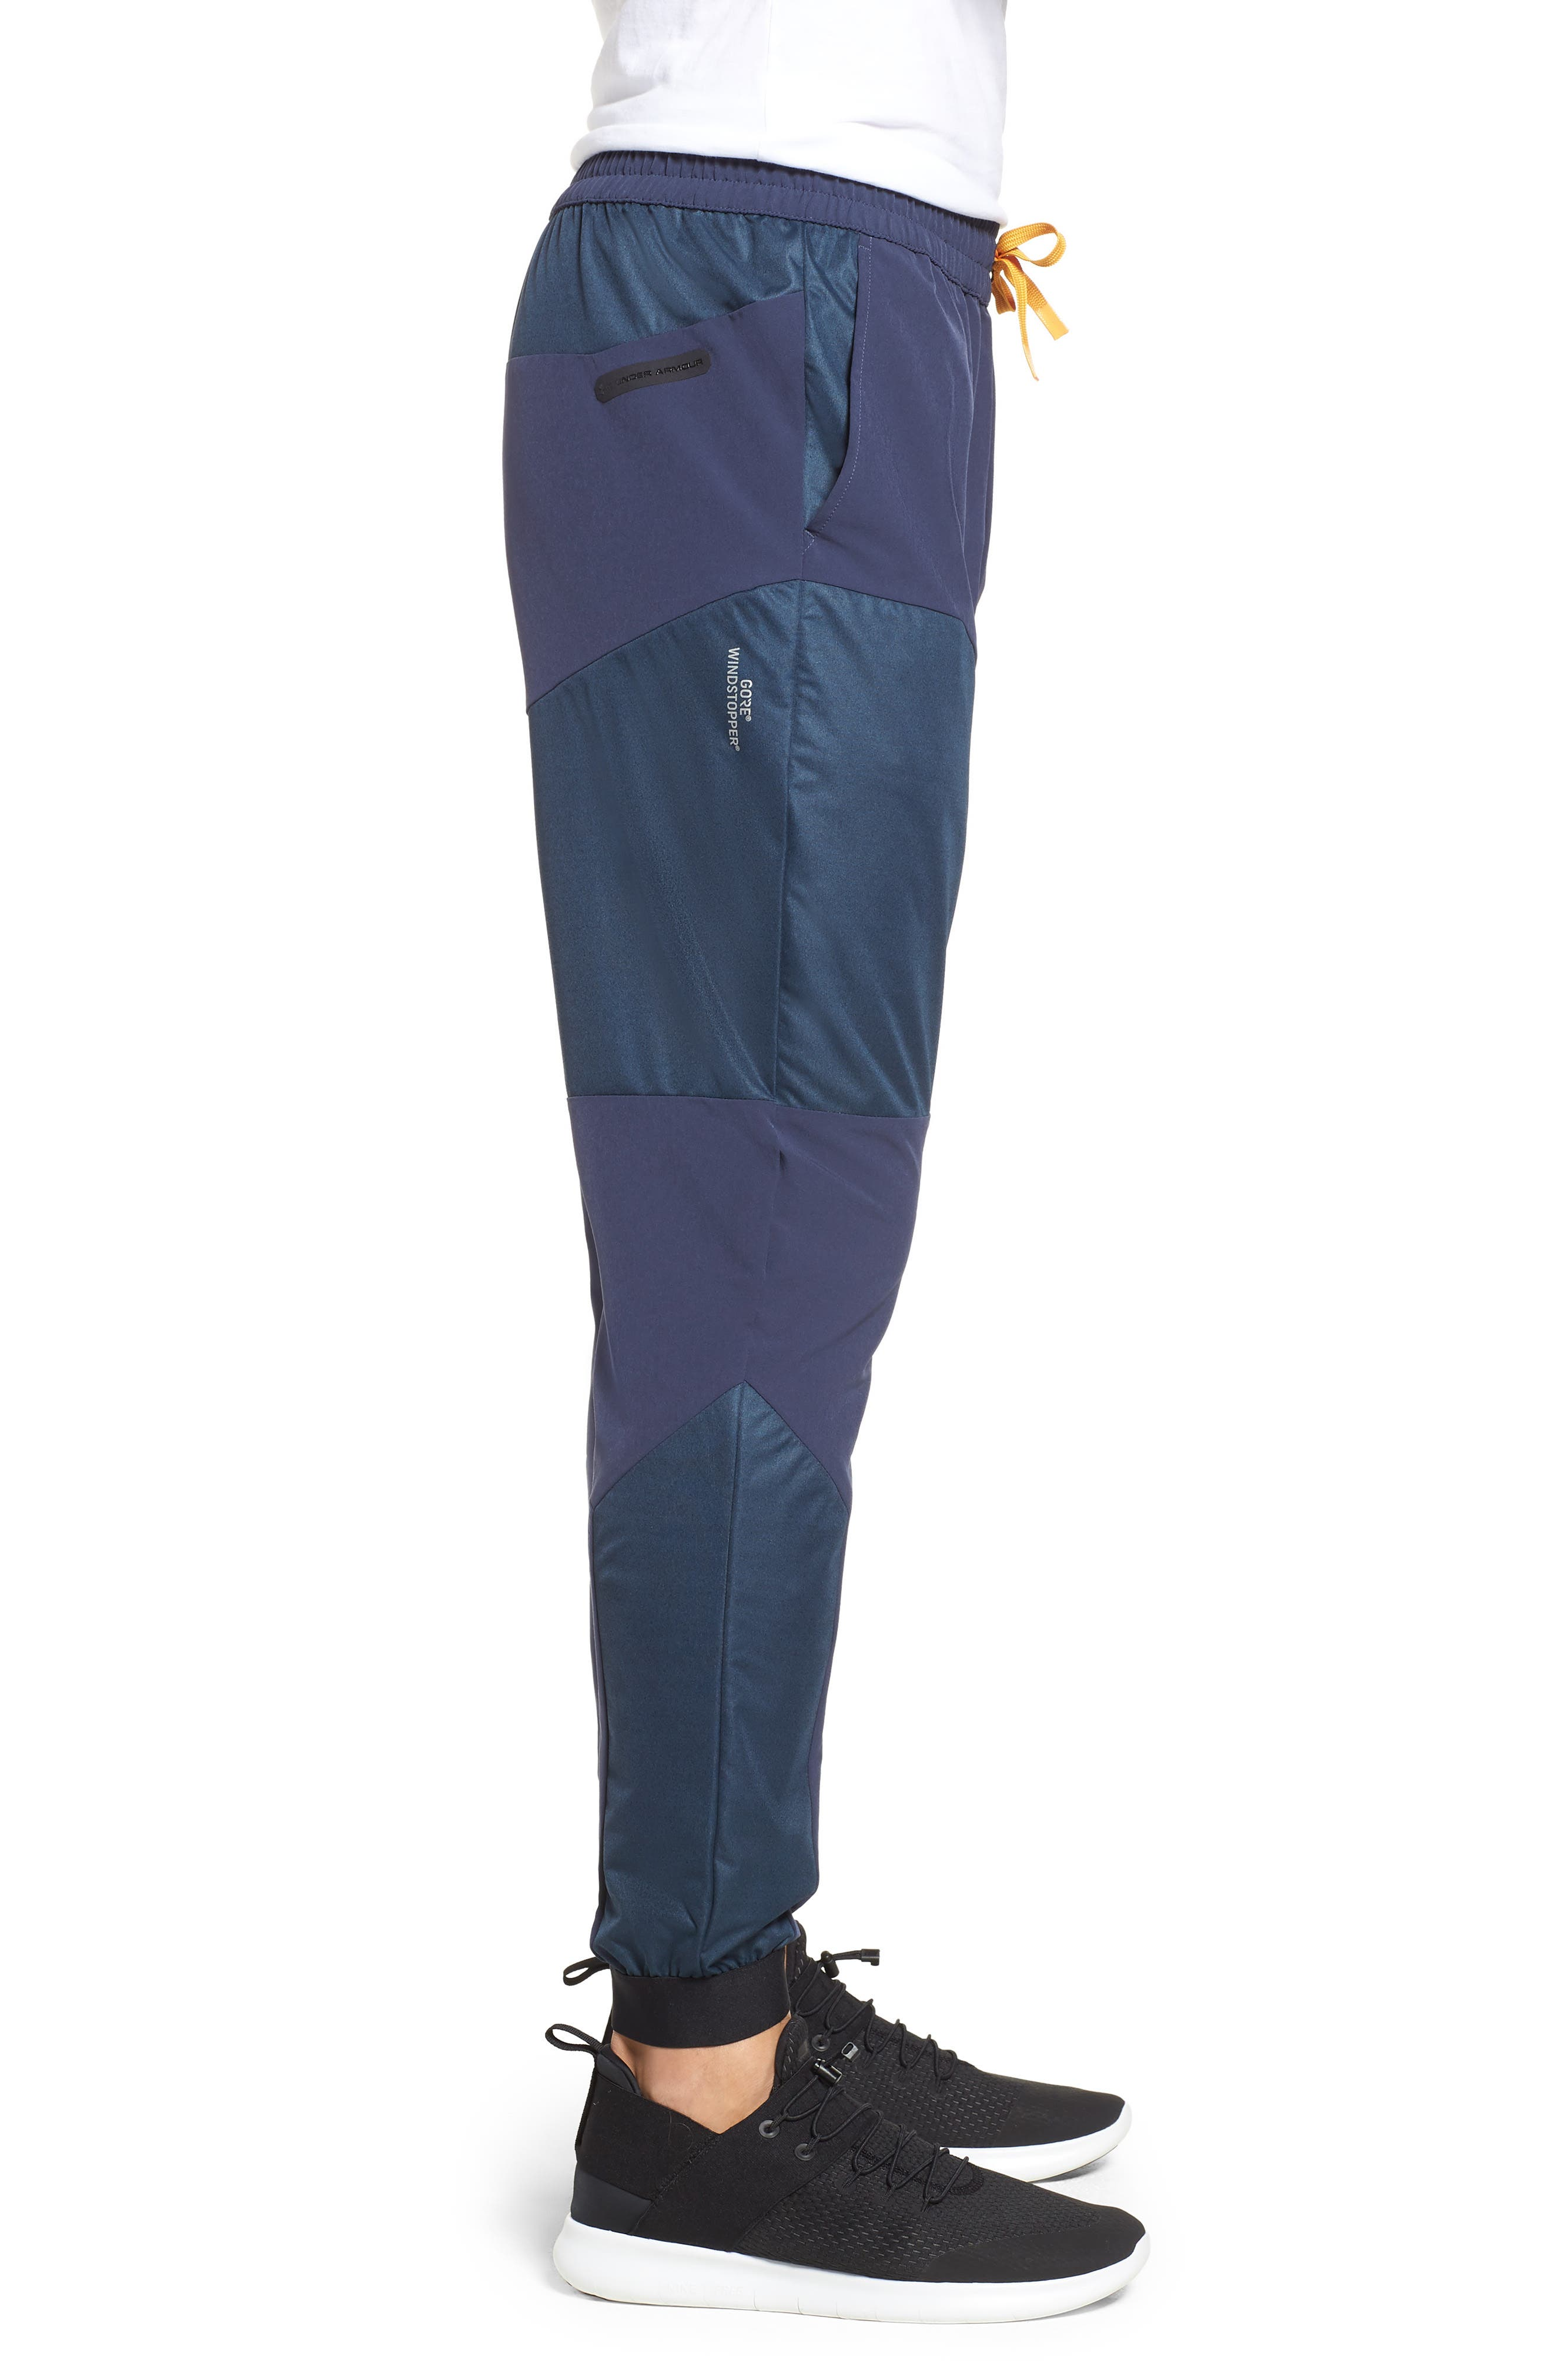 Unstoppable GORE<sup>®</sup> WINDSTOPPER<sup>®</sup> Jogger Pants,                             Alternate thumbnail 3, color,                             MIDSUMMER NIGHT / REFLECTIVE